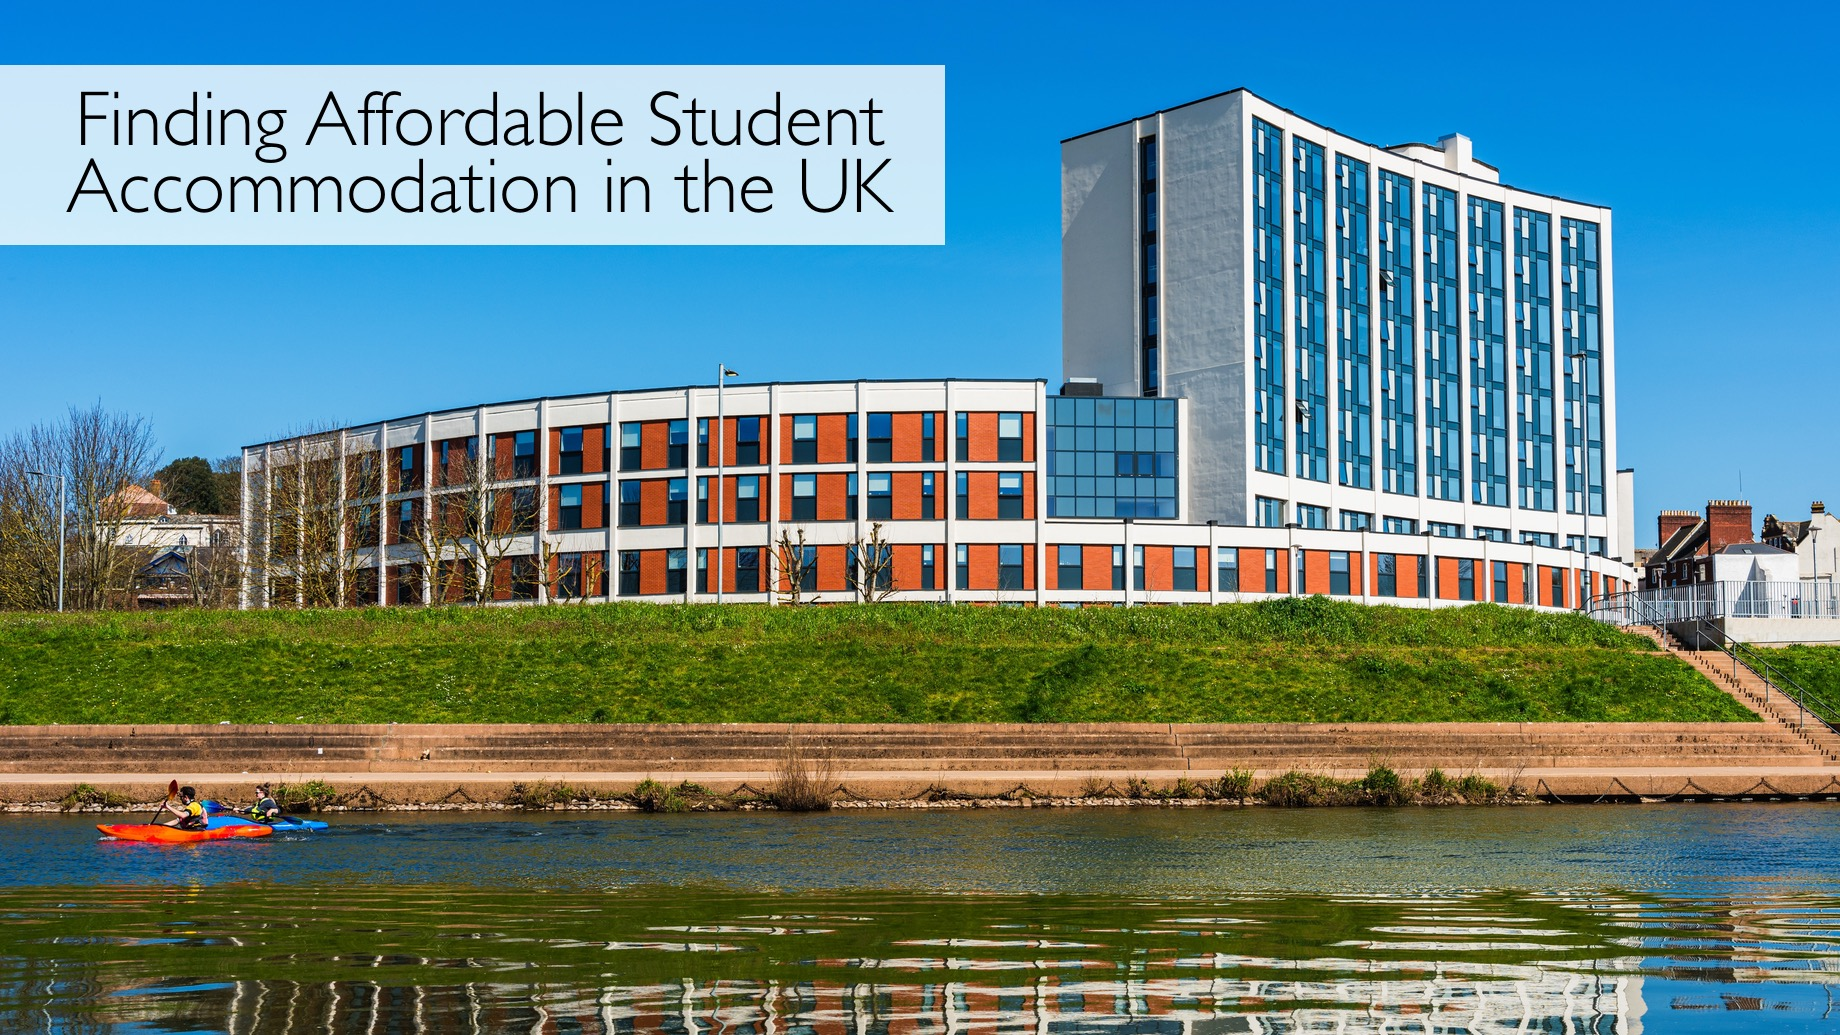 Finding Affordable Student Accommodation in the UK